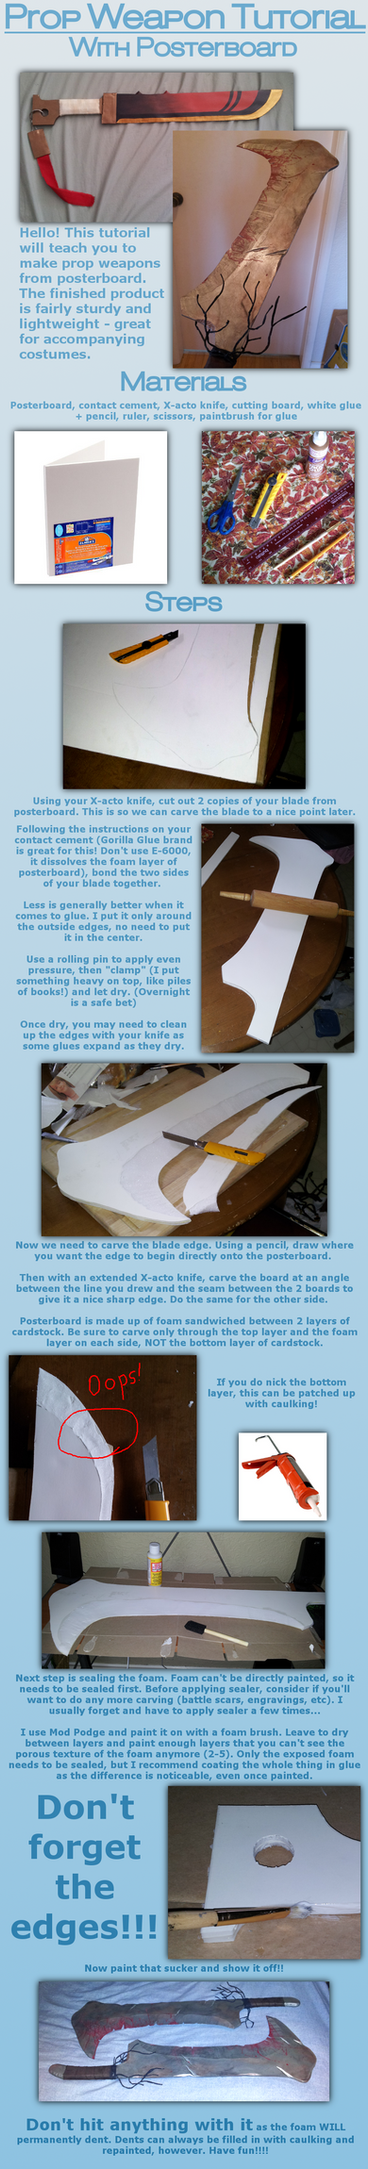 Prop Weapon Tutorial (Posterboard) by willowfall